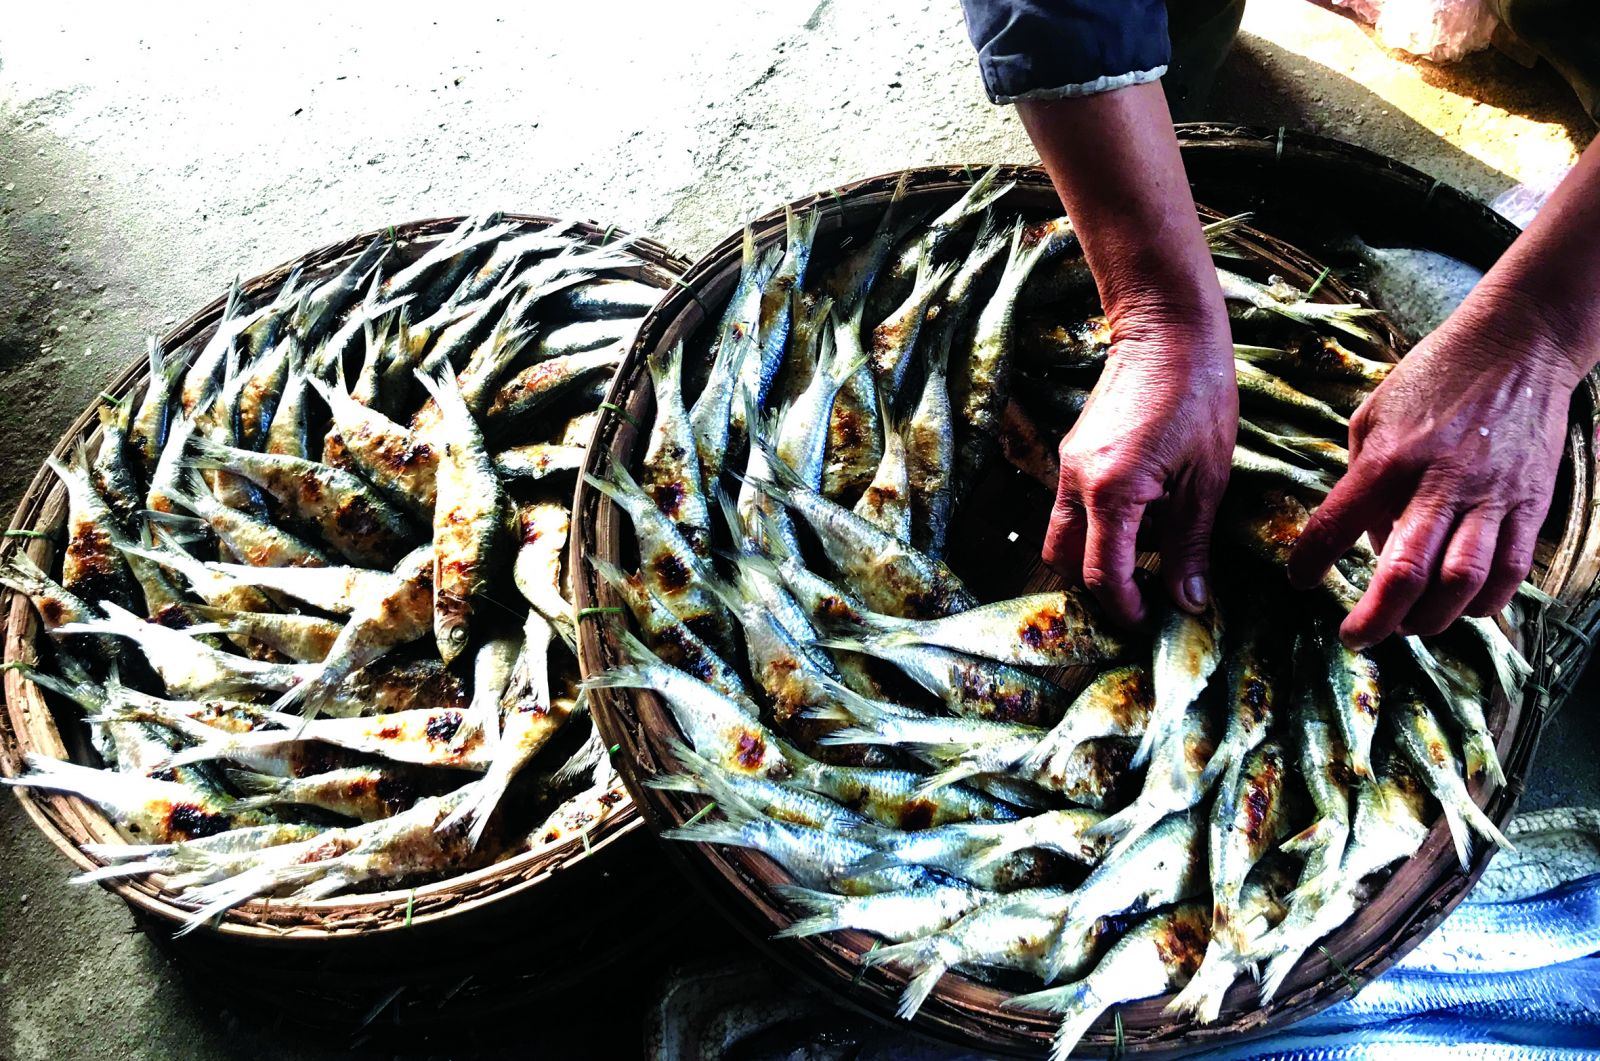 In addition to selling fresh fishes, making and selling grilled herrings is also a way to help local people increase their income